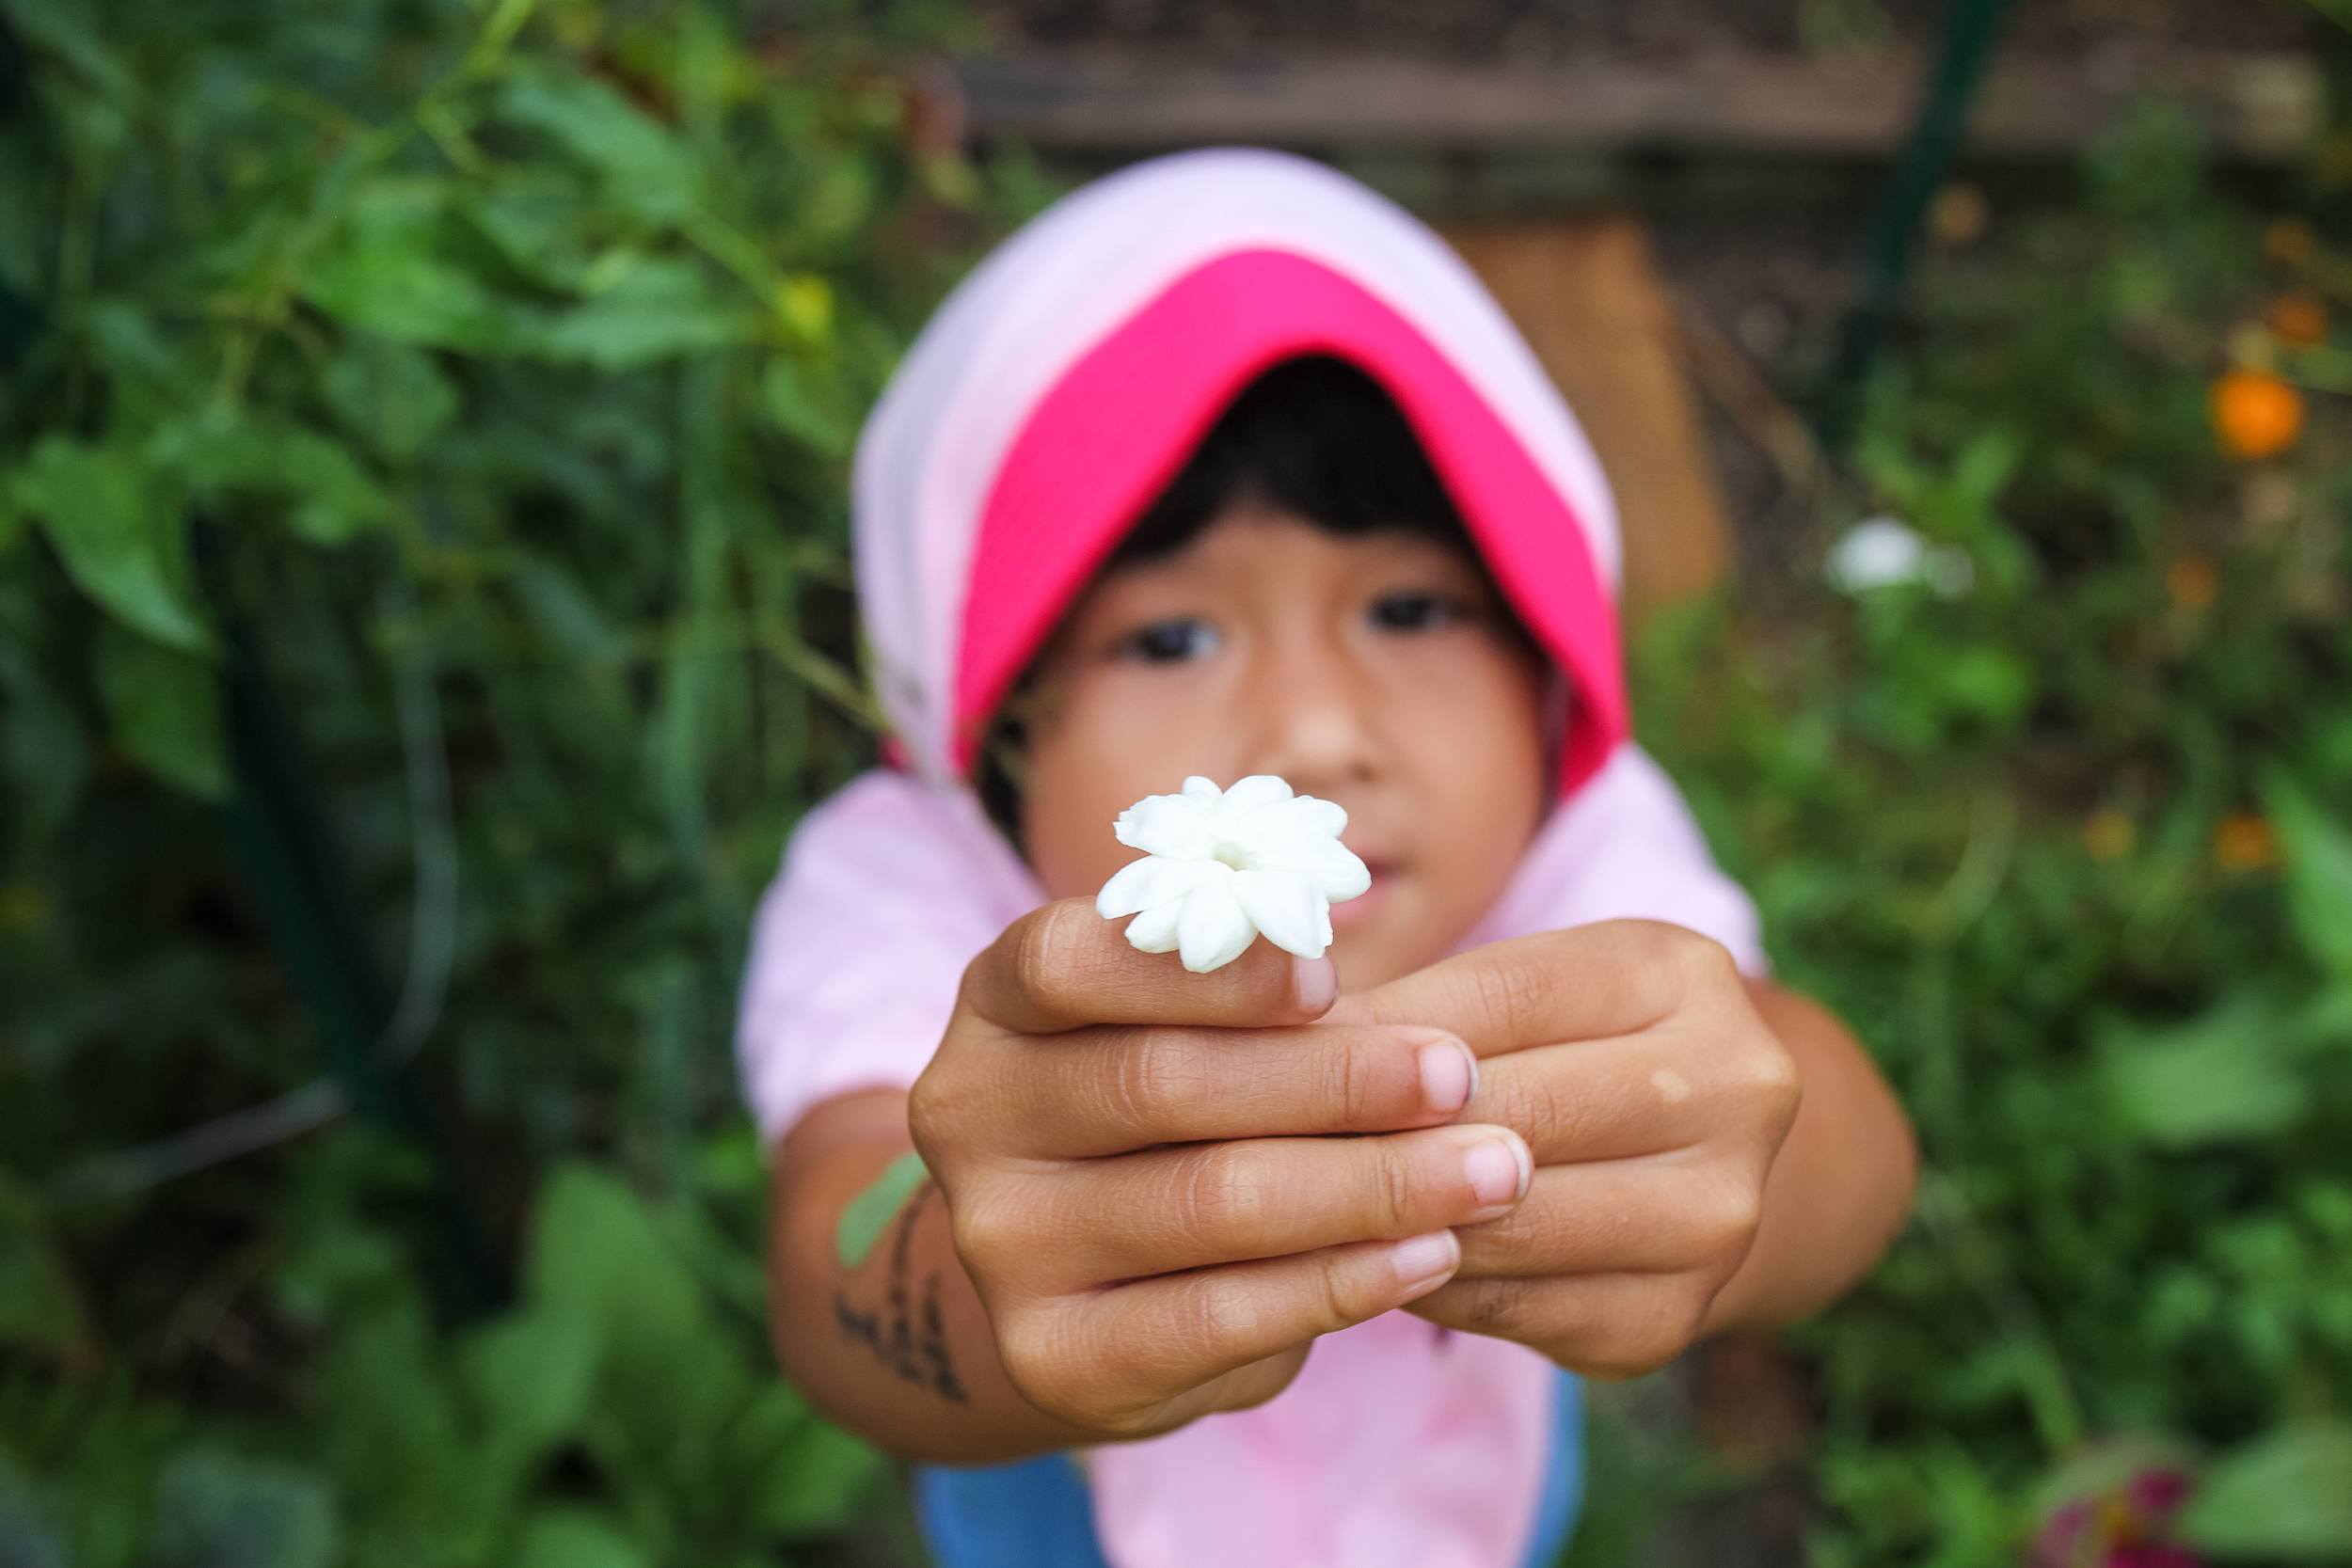 A daughter of the Caspari's displays a flower she found while running through the farm rows. Flowers are welcome surprise plants the farm, acting as bug repellants.